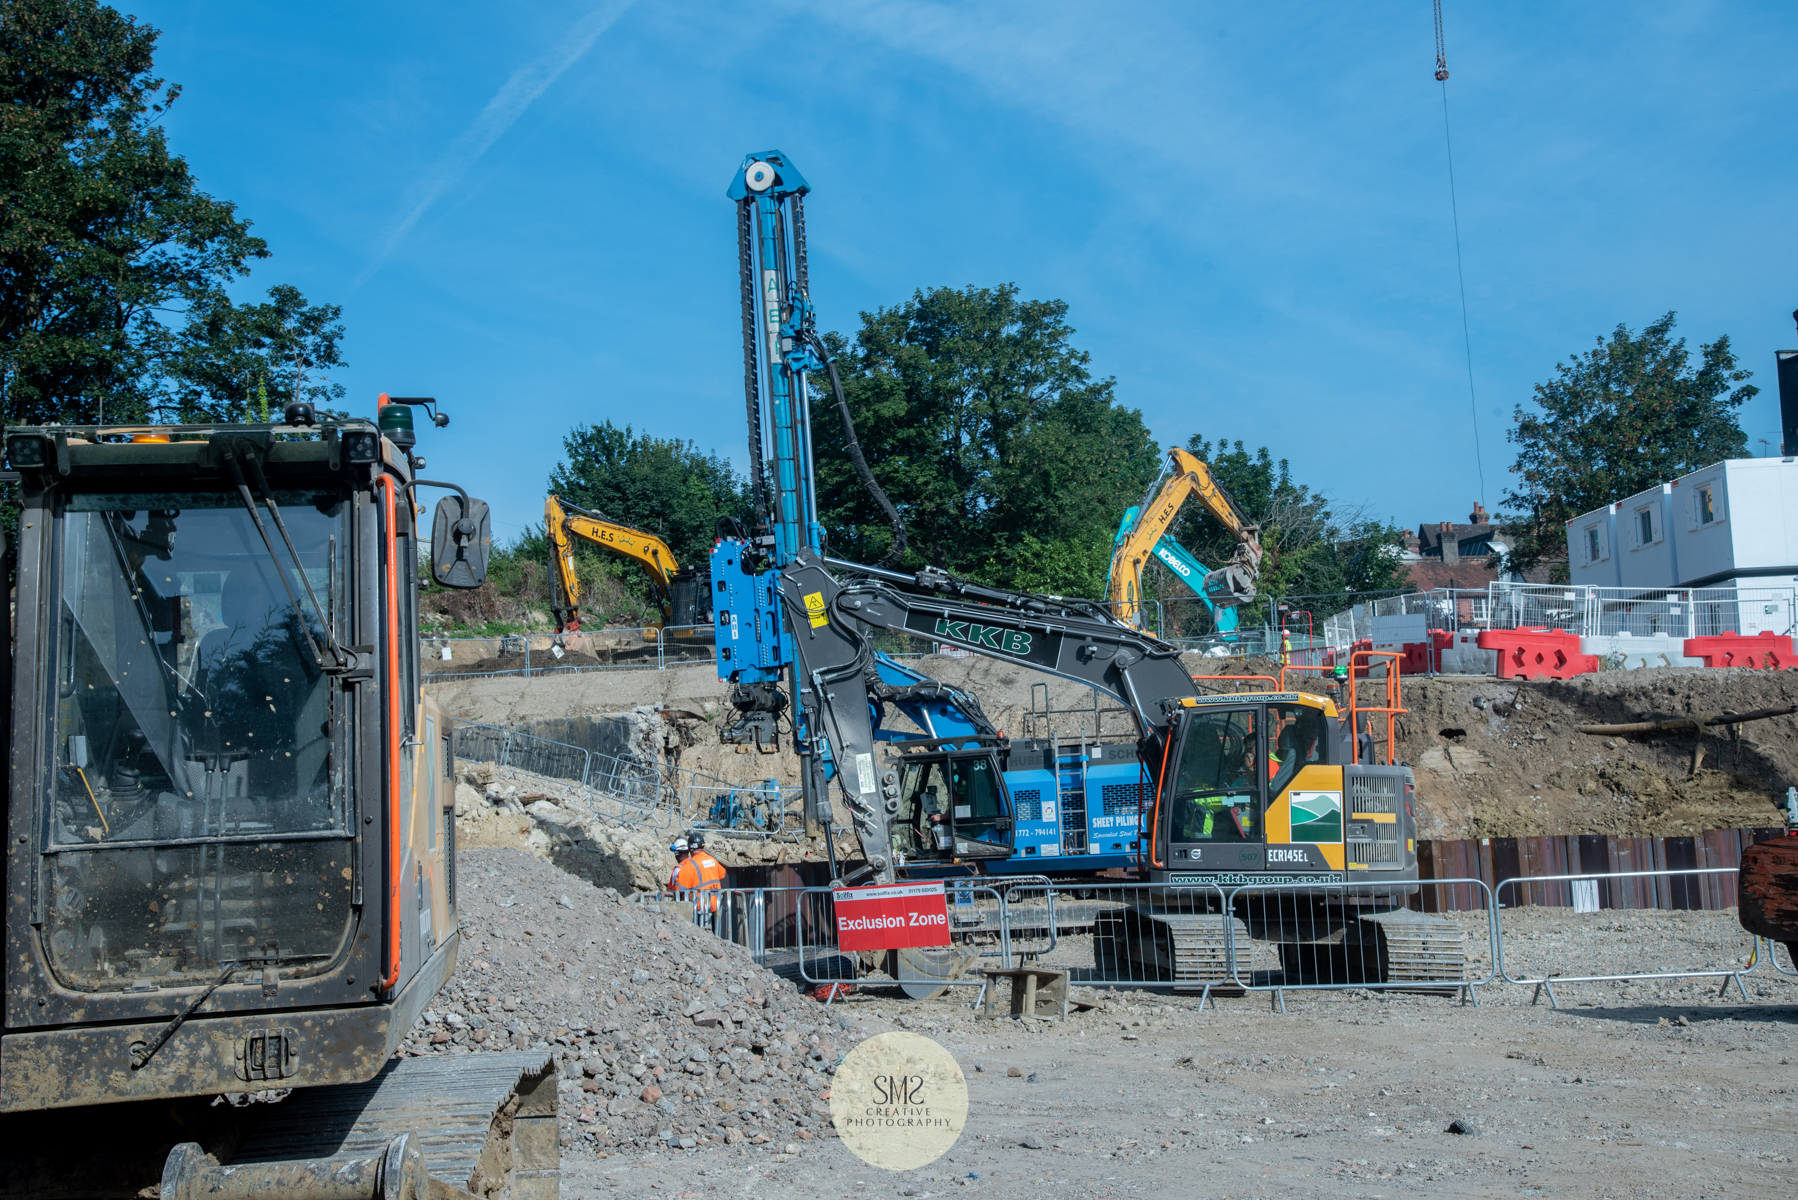 Machinery in place for sheet piling to Blocks A & B